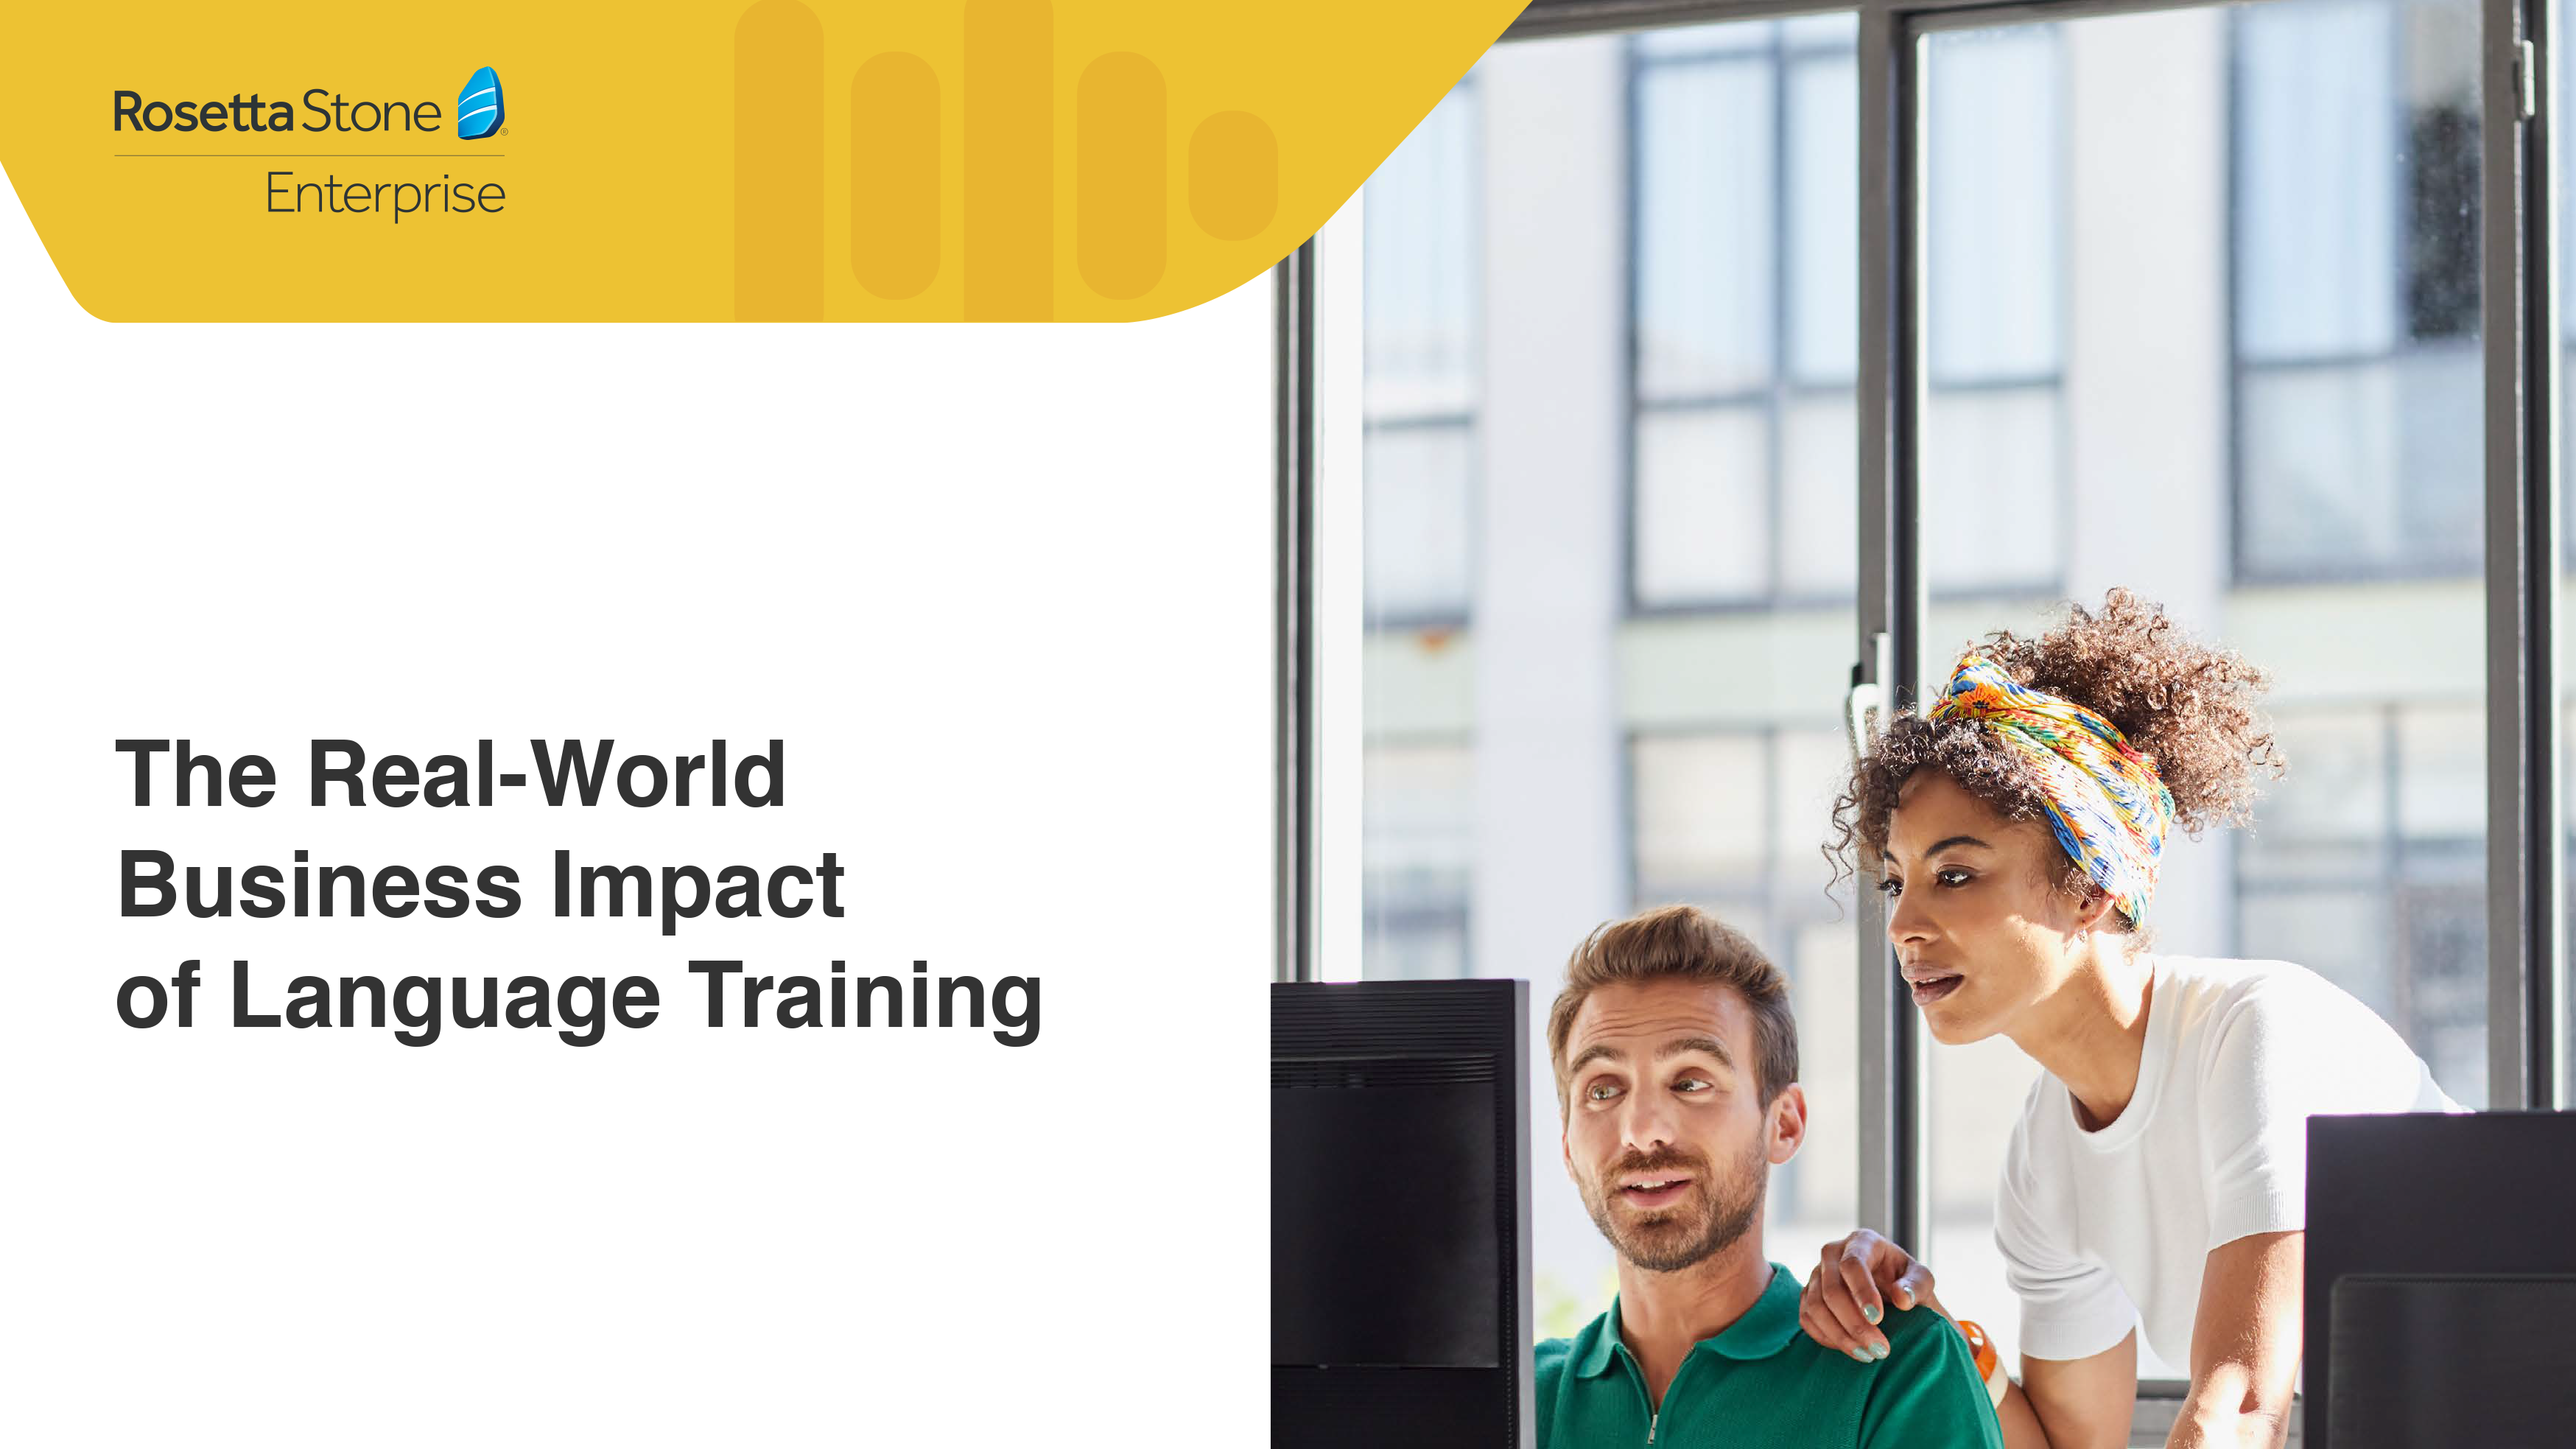 [eBook] The real-world business impact of language training